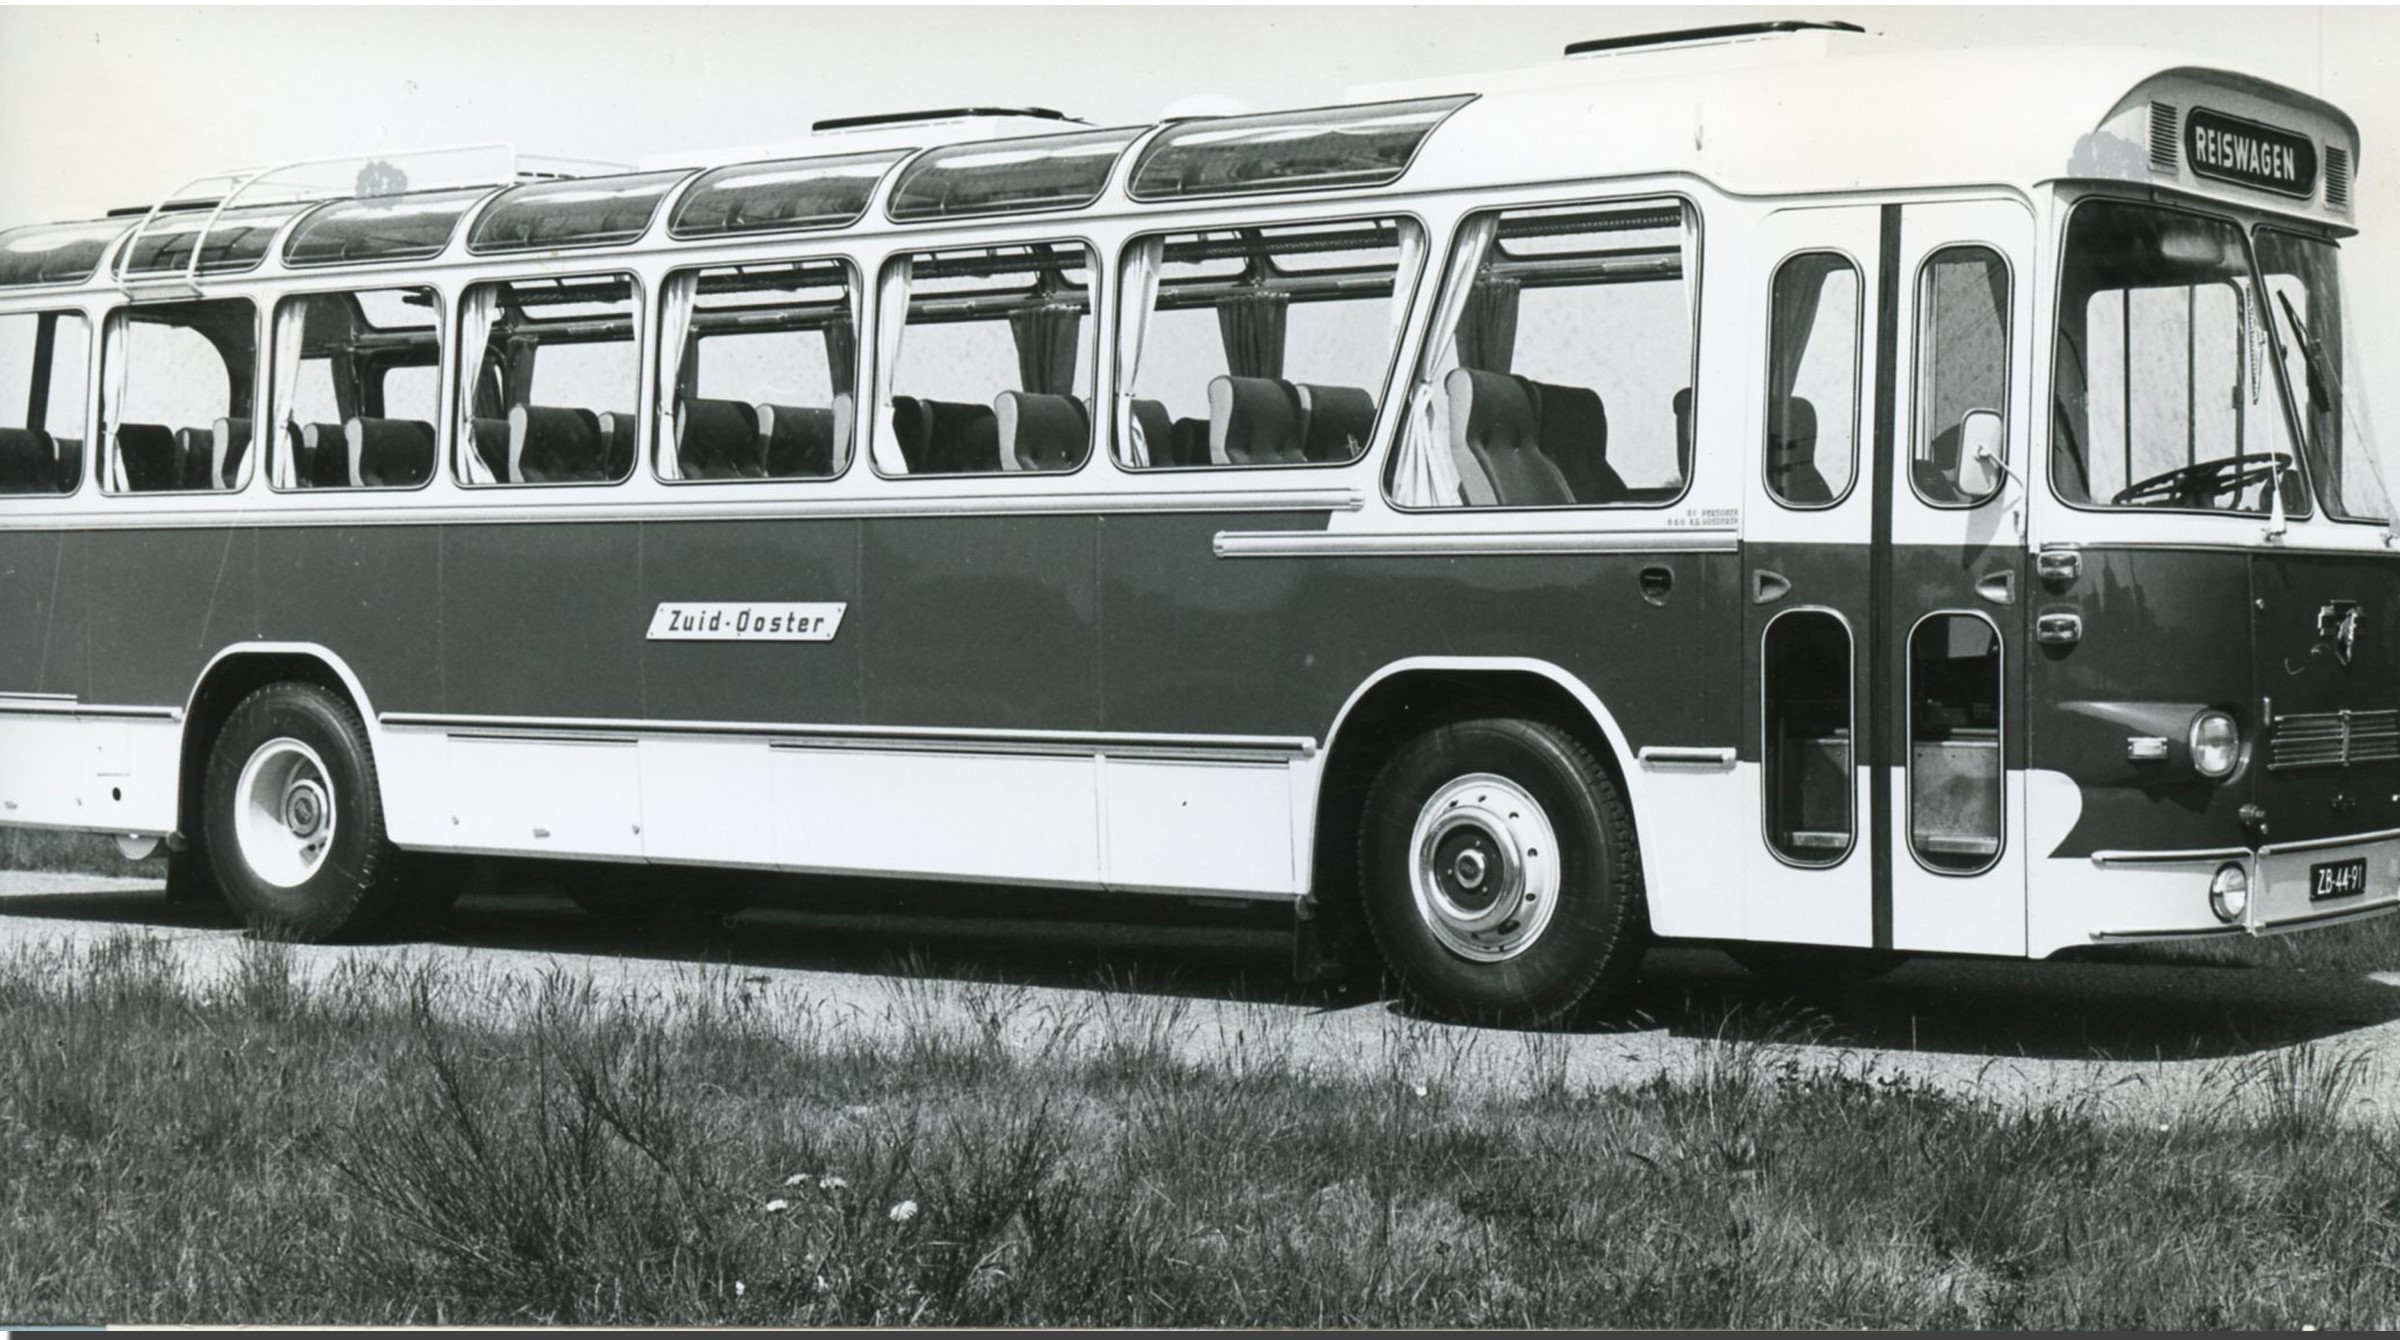 7516-Zuid-Ooster-1